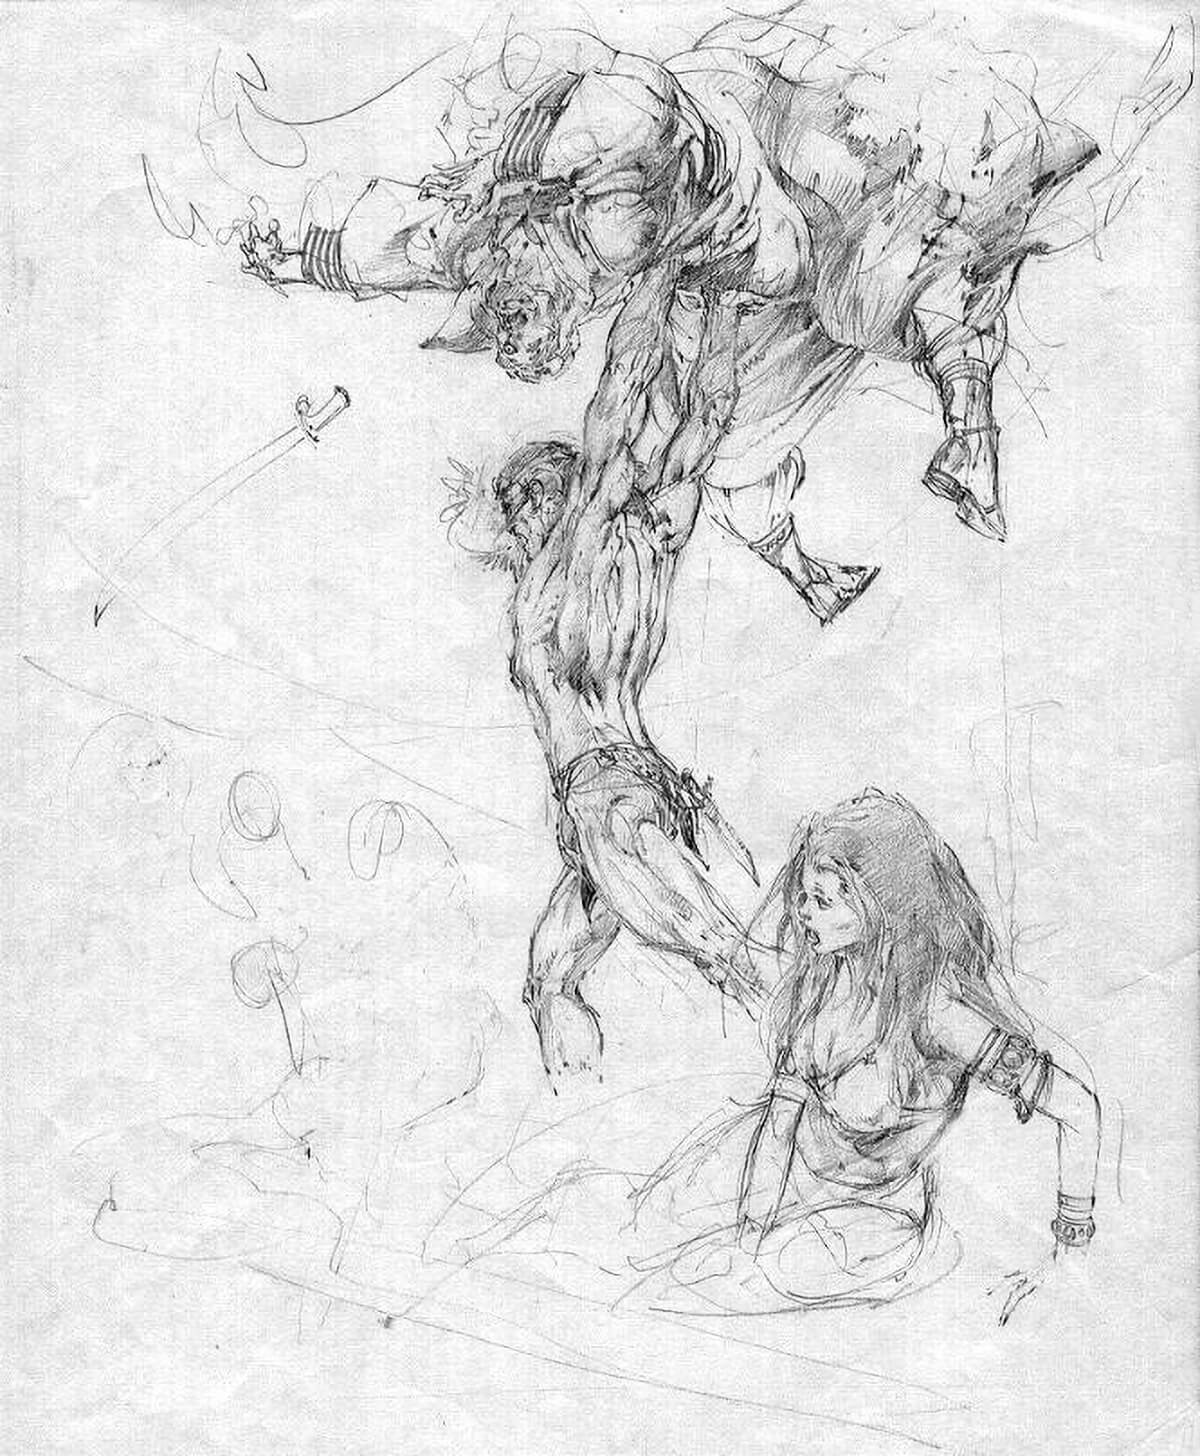 Neal Adams 4 The Son Of Tarzan Rough 1